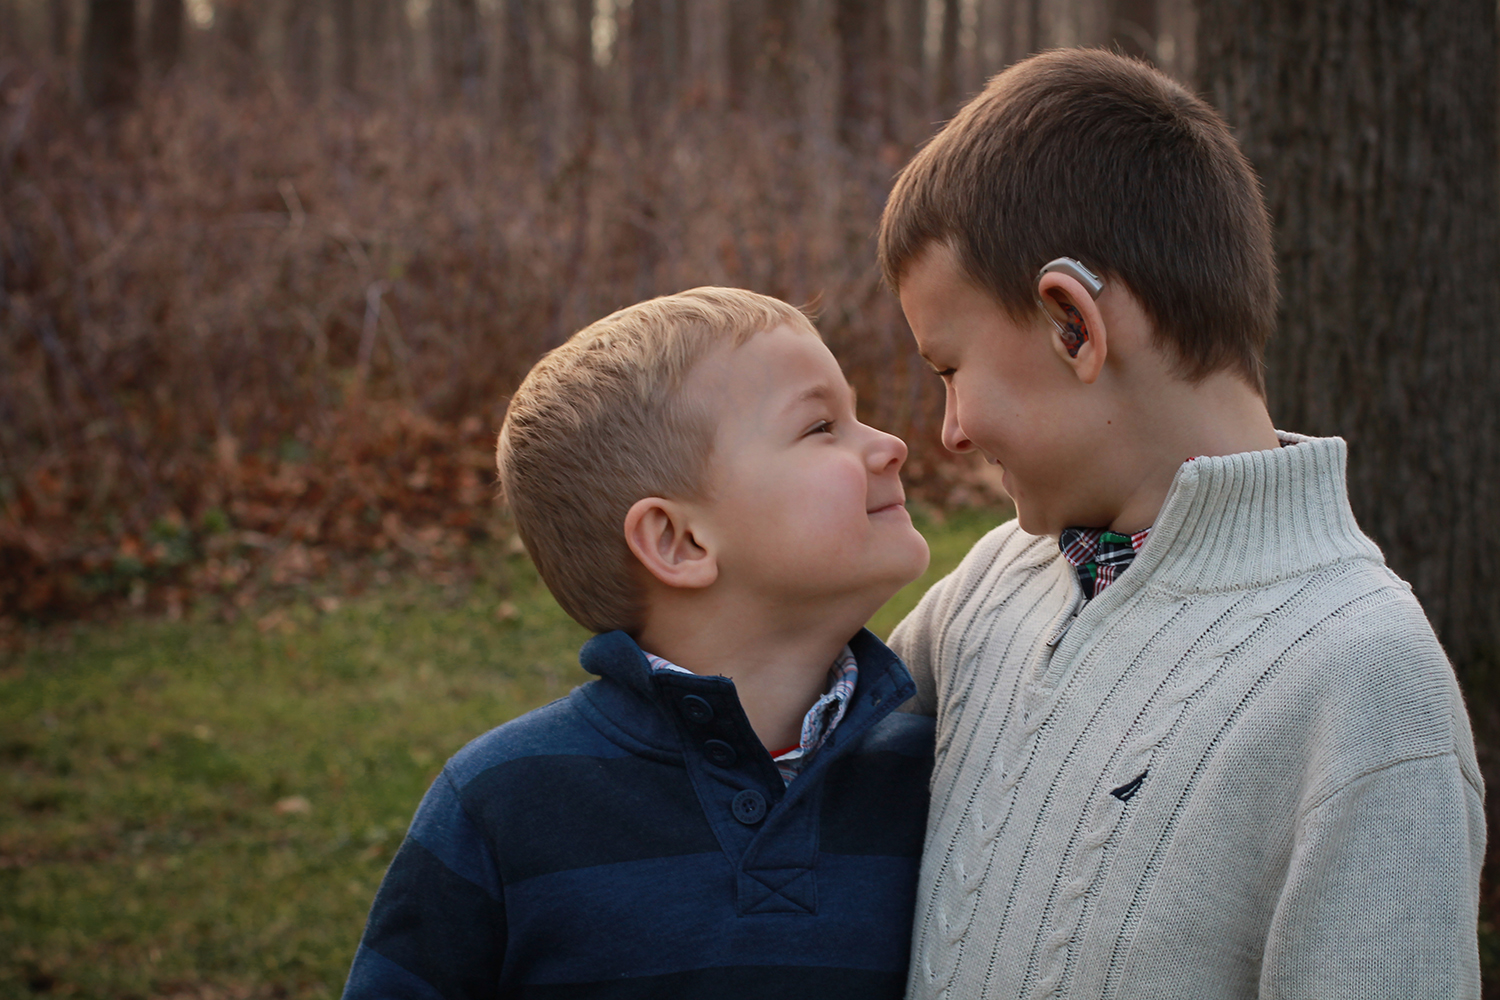 Copy of brothers looking at each other during family photo session